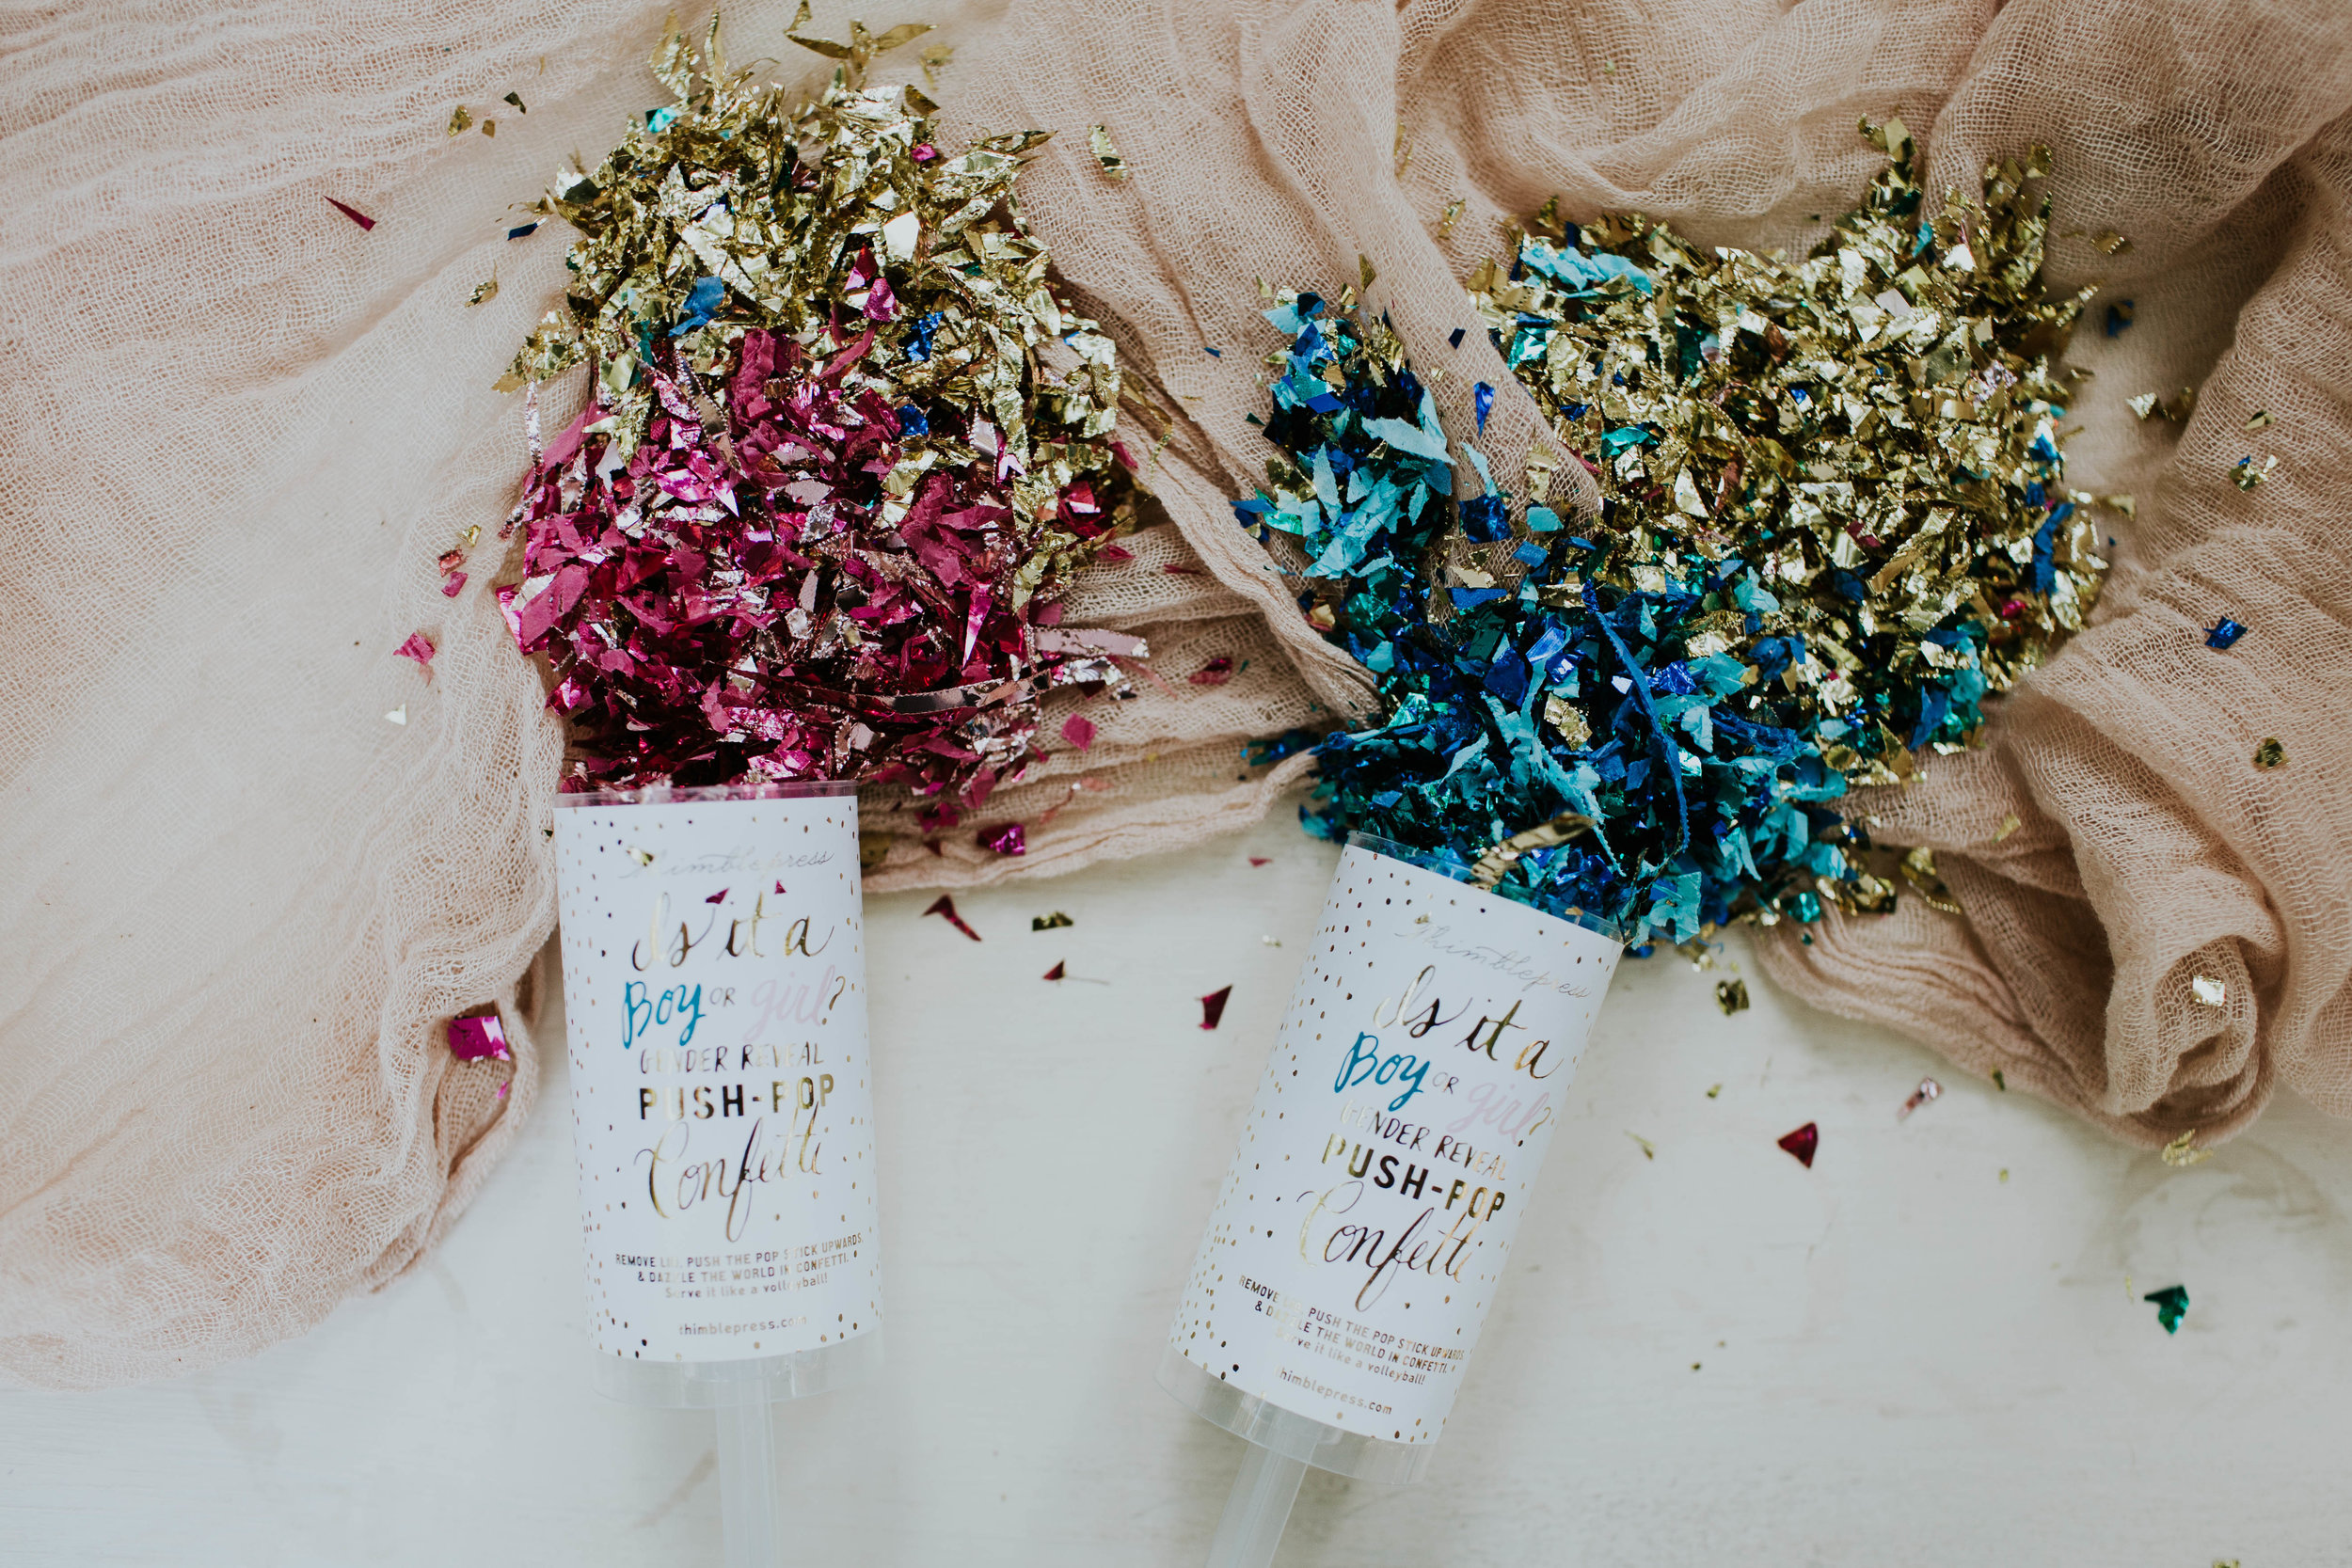   Gender Reveal Confetti Poppers: Thimblepress   Photo:Amie Soares Photography   Design: Ribbon & Leaf Events  